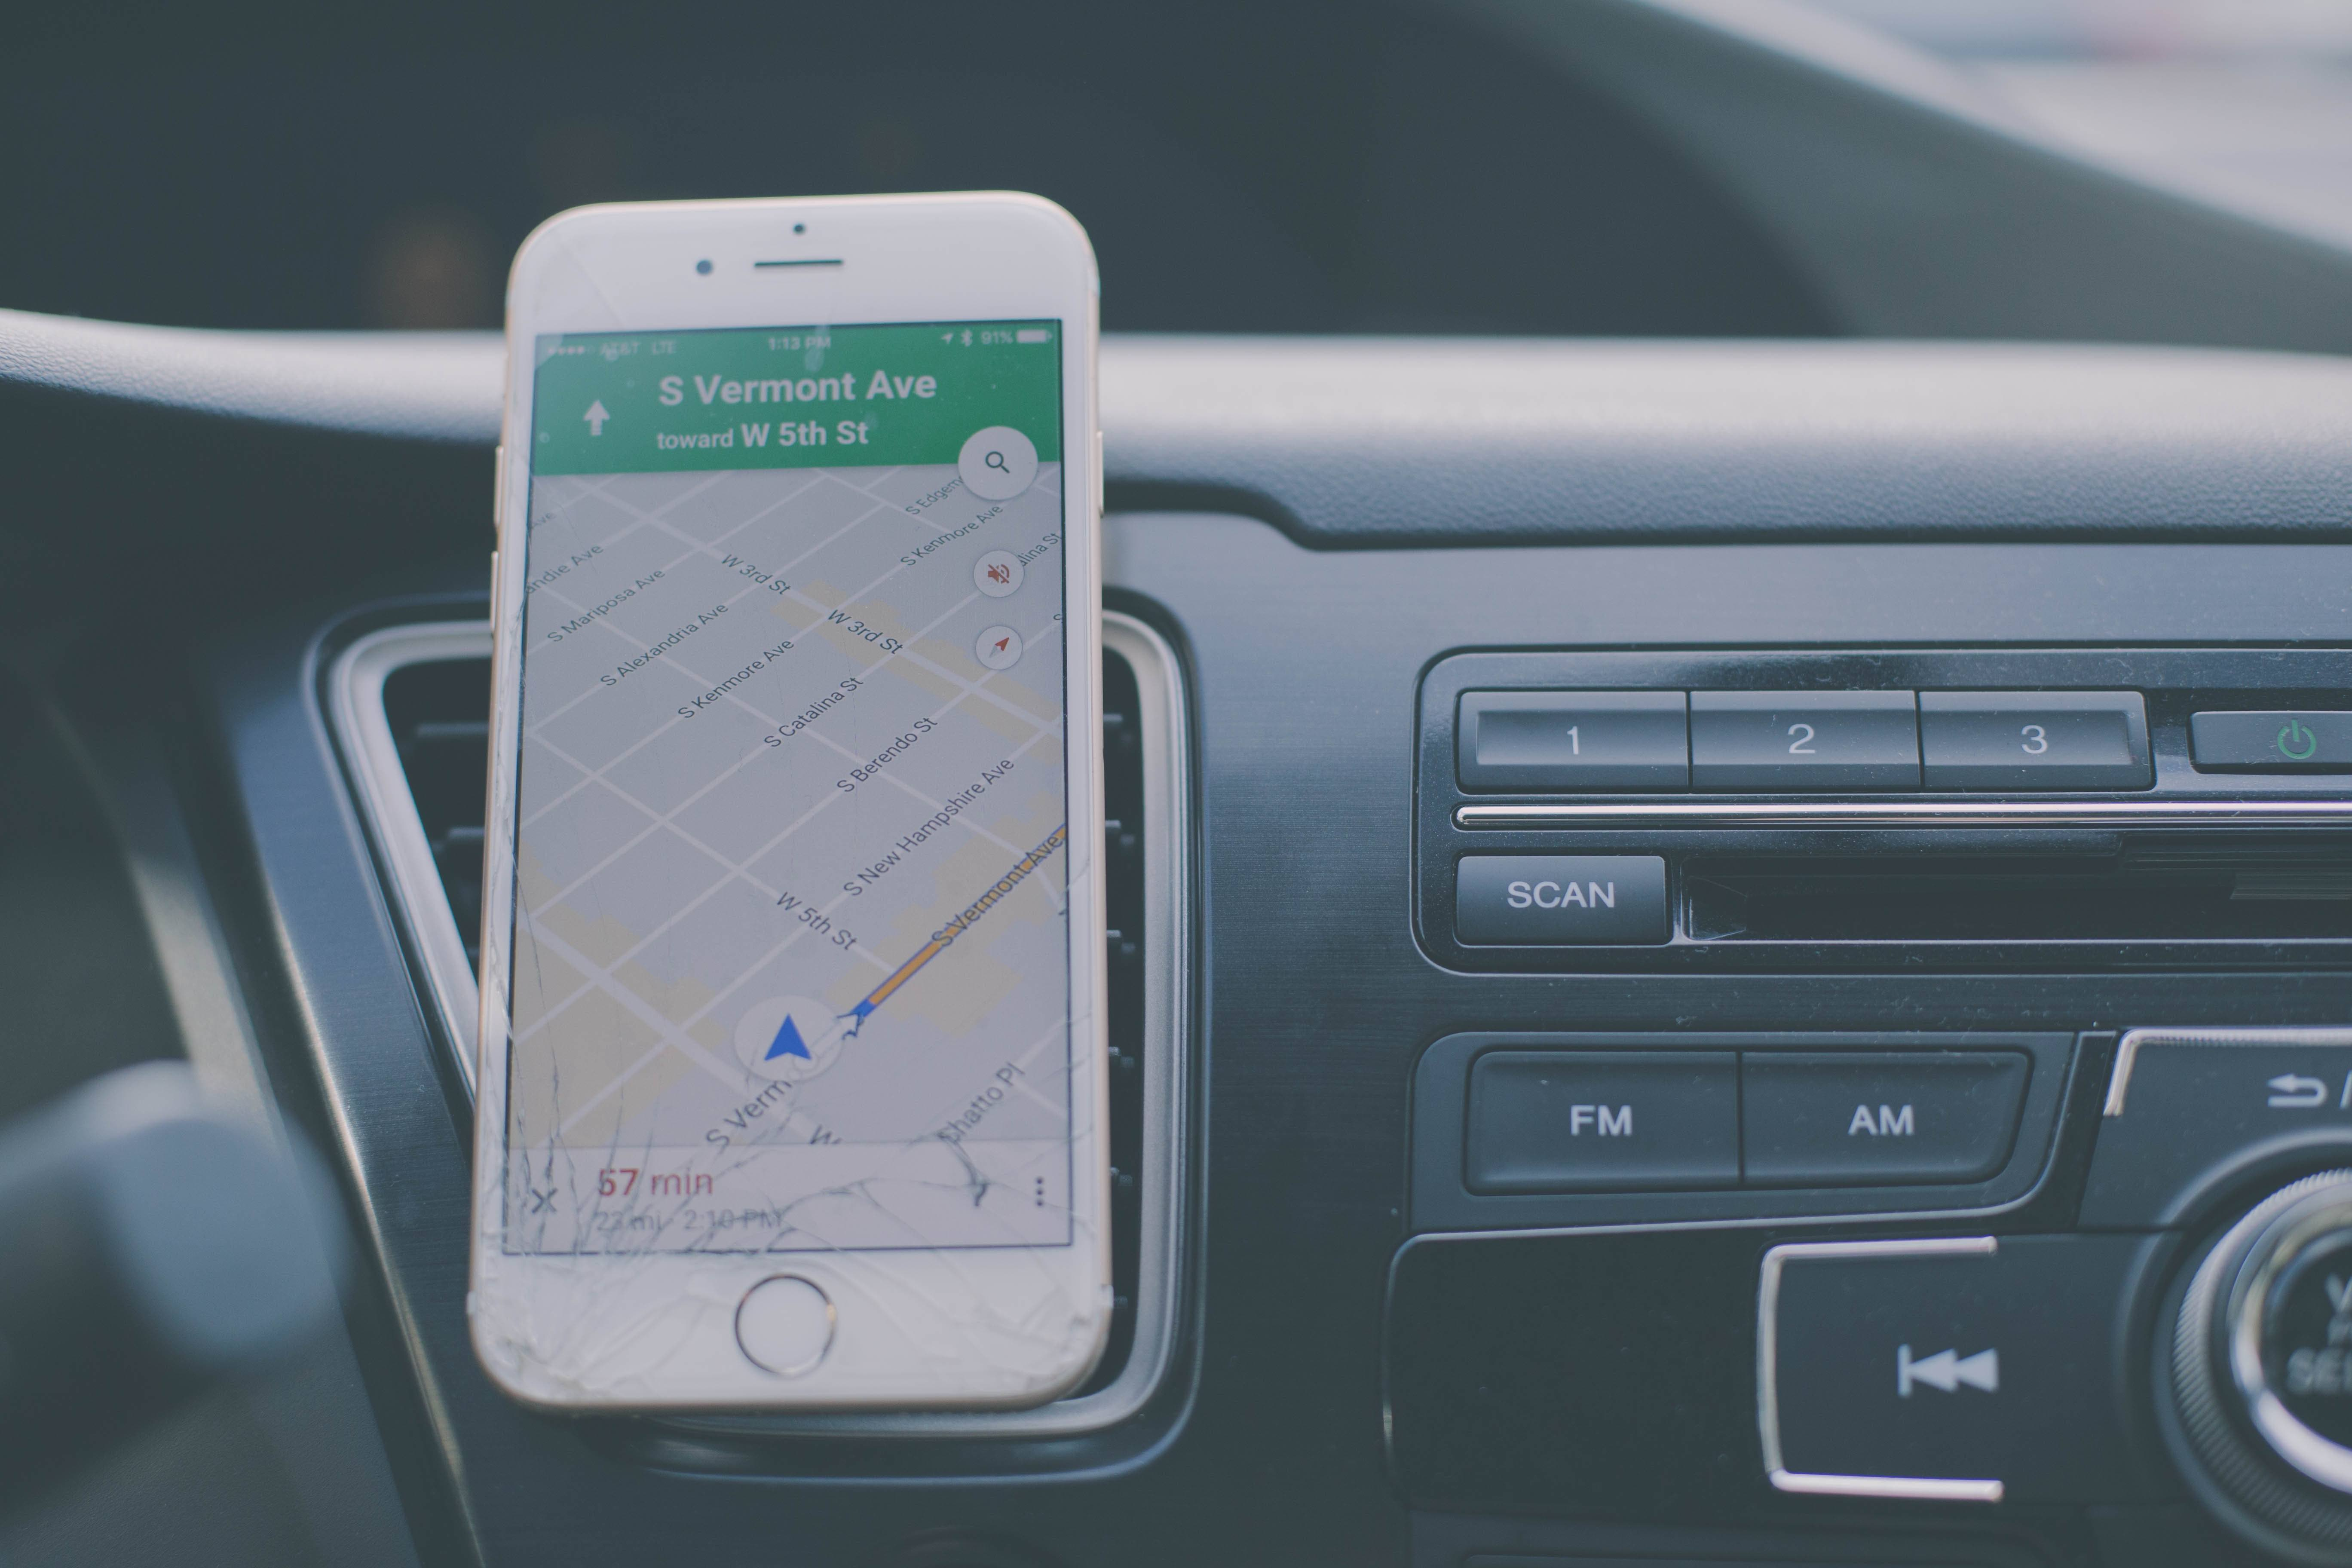 Avoidable contact ride sharing  phone directions